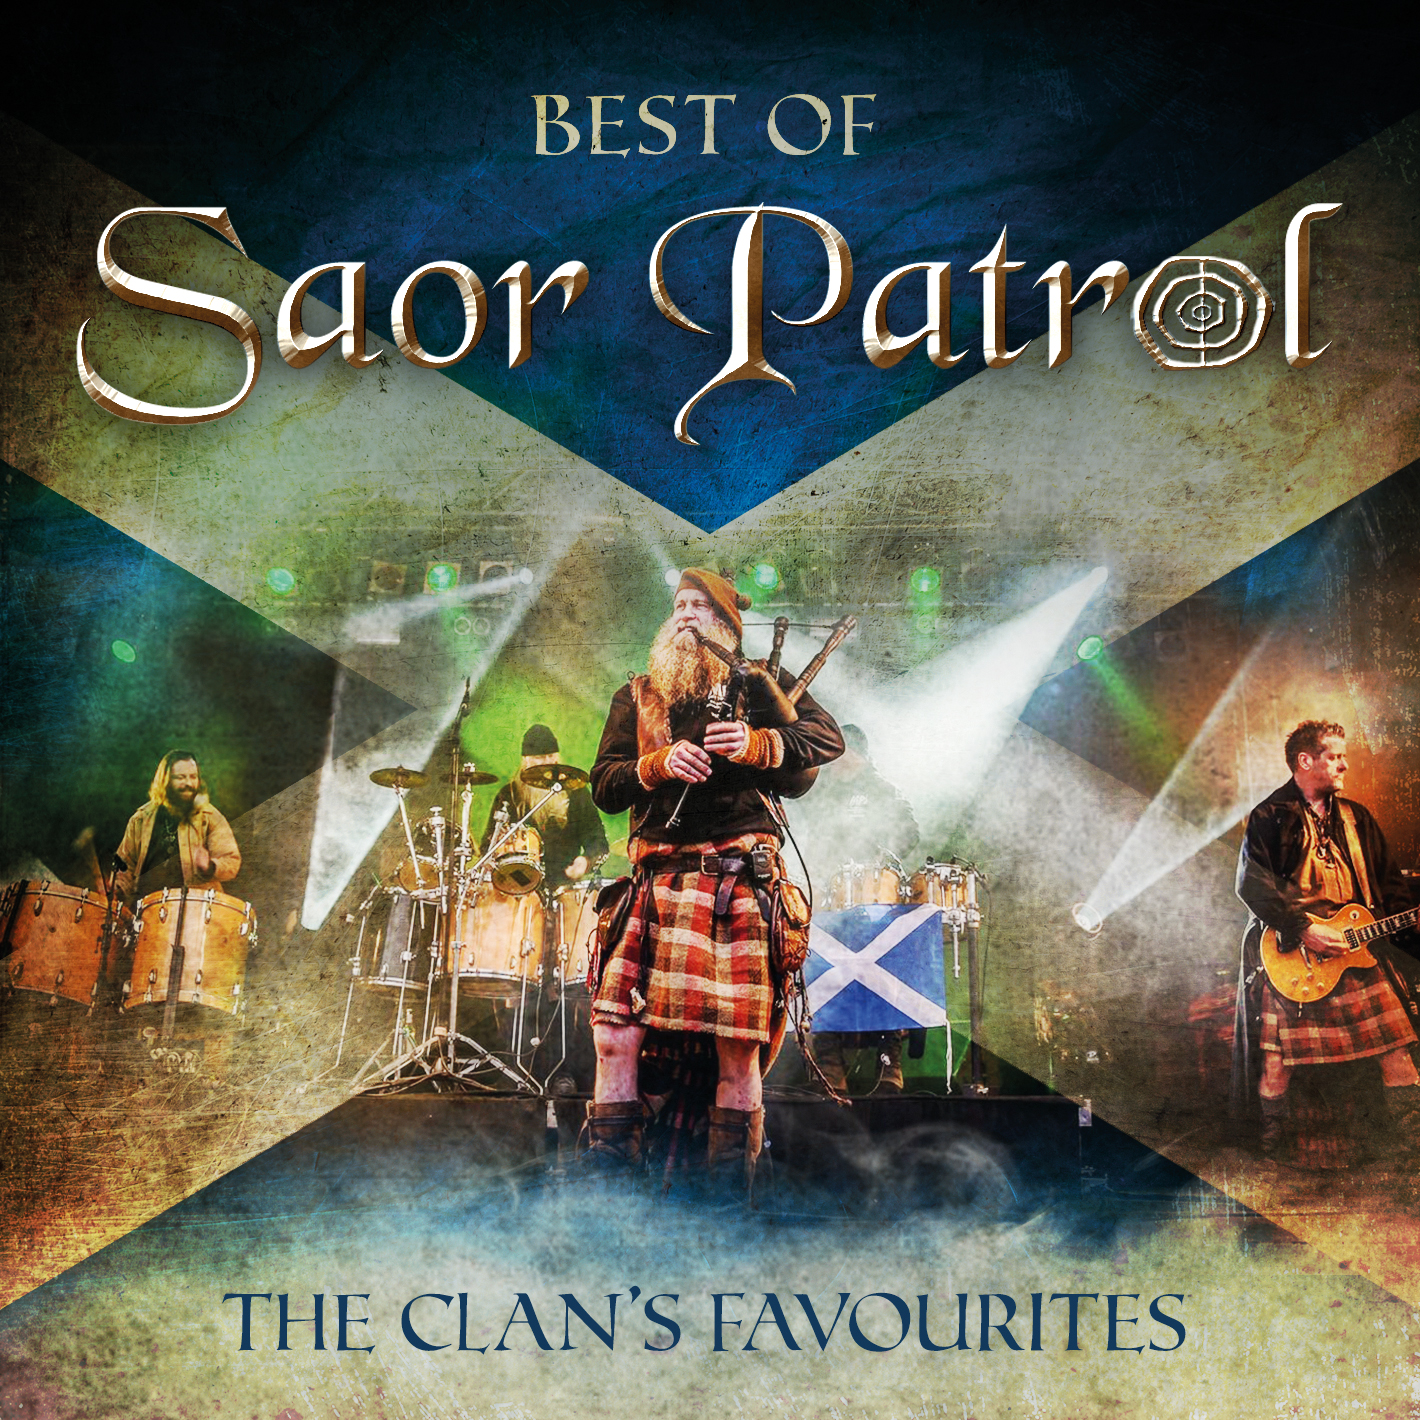 EUCD2841 Best of Saor Patrol - The Clan's Favourites